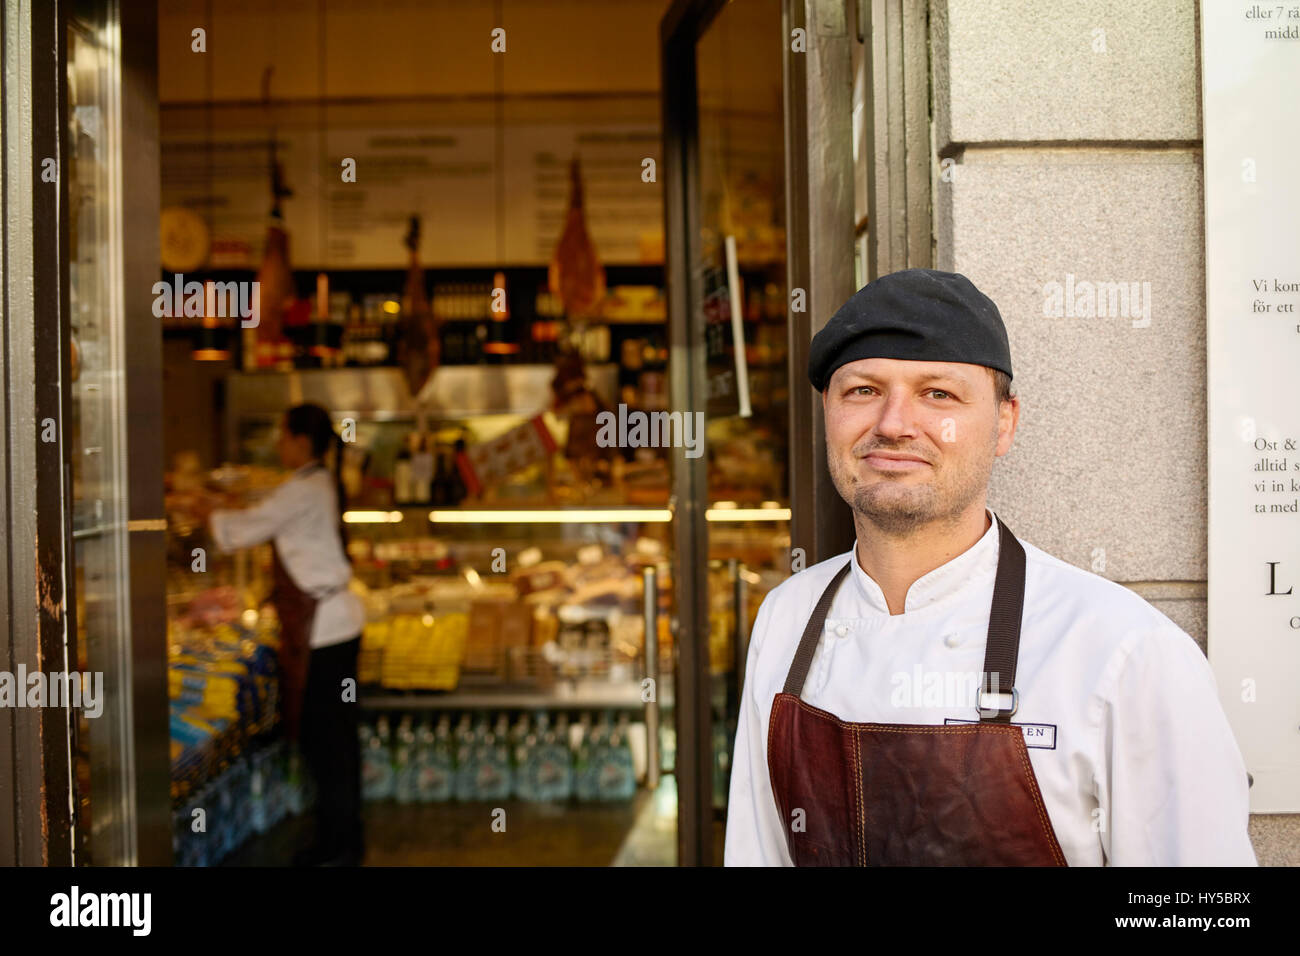 Sweden, Man in apron standing in front of store - Stock Image